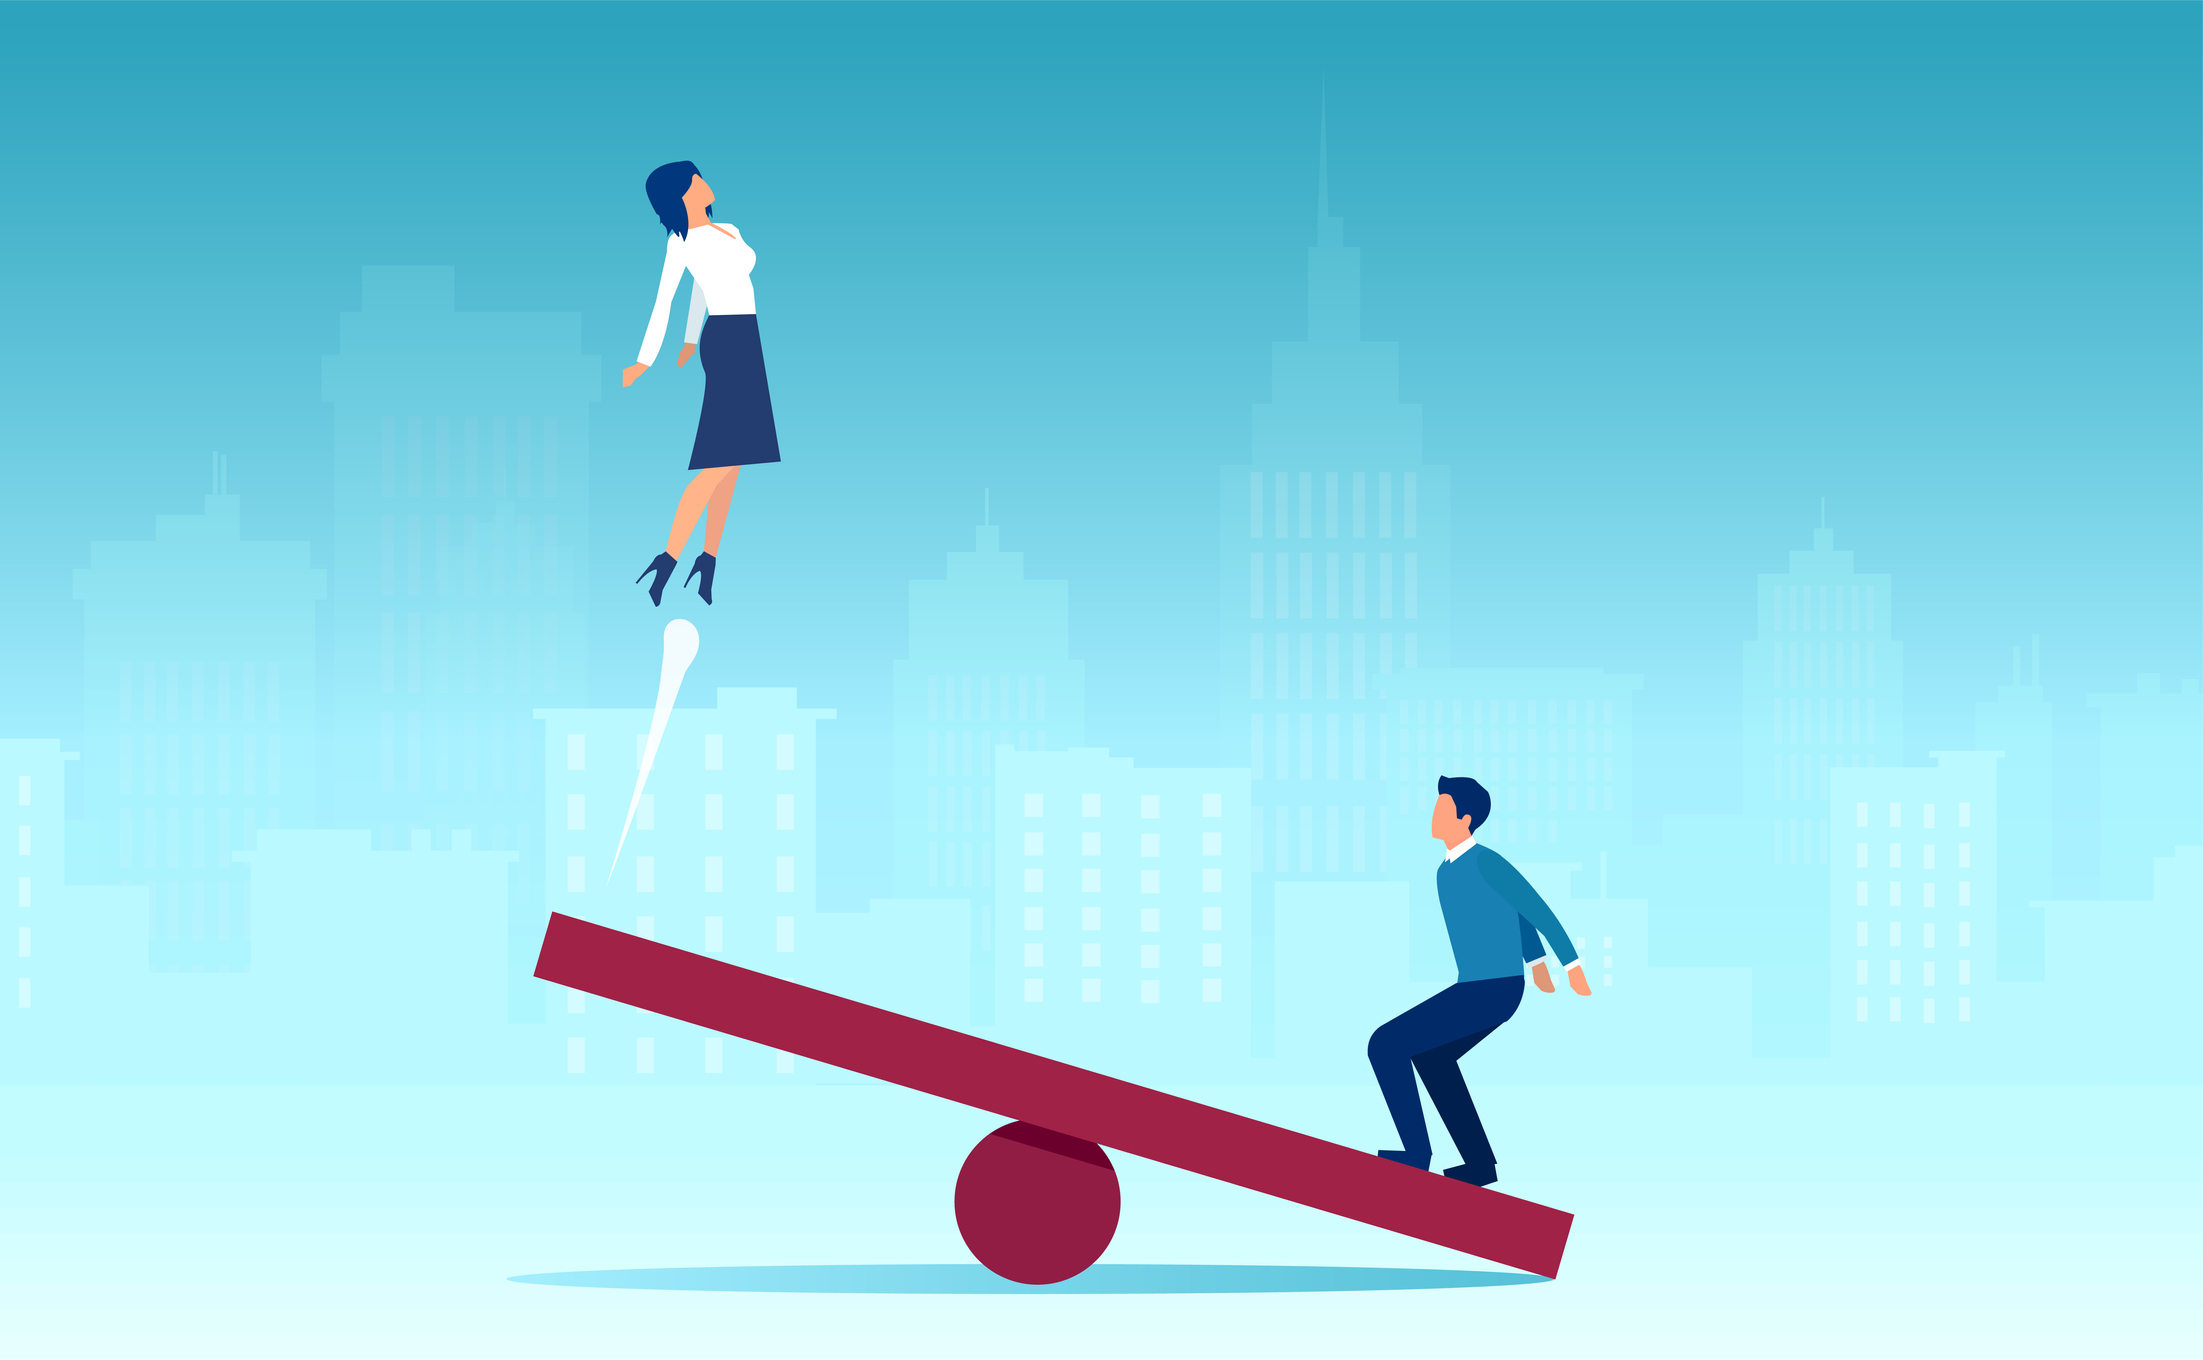 Vector of a man jumping on a seesaw helping a woman to fly up on the other side